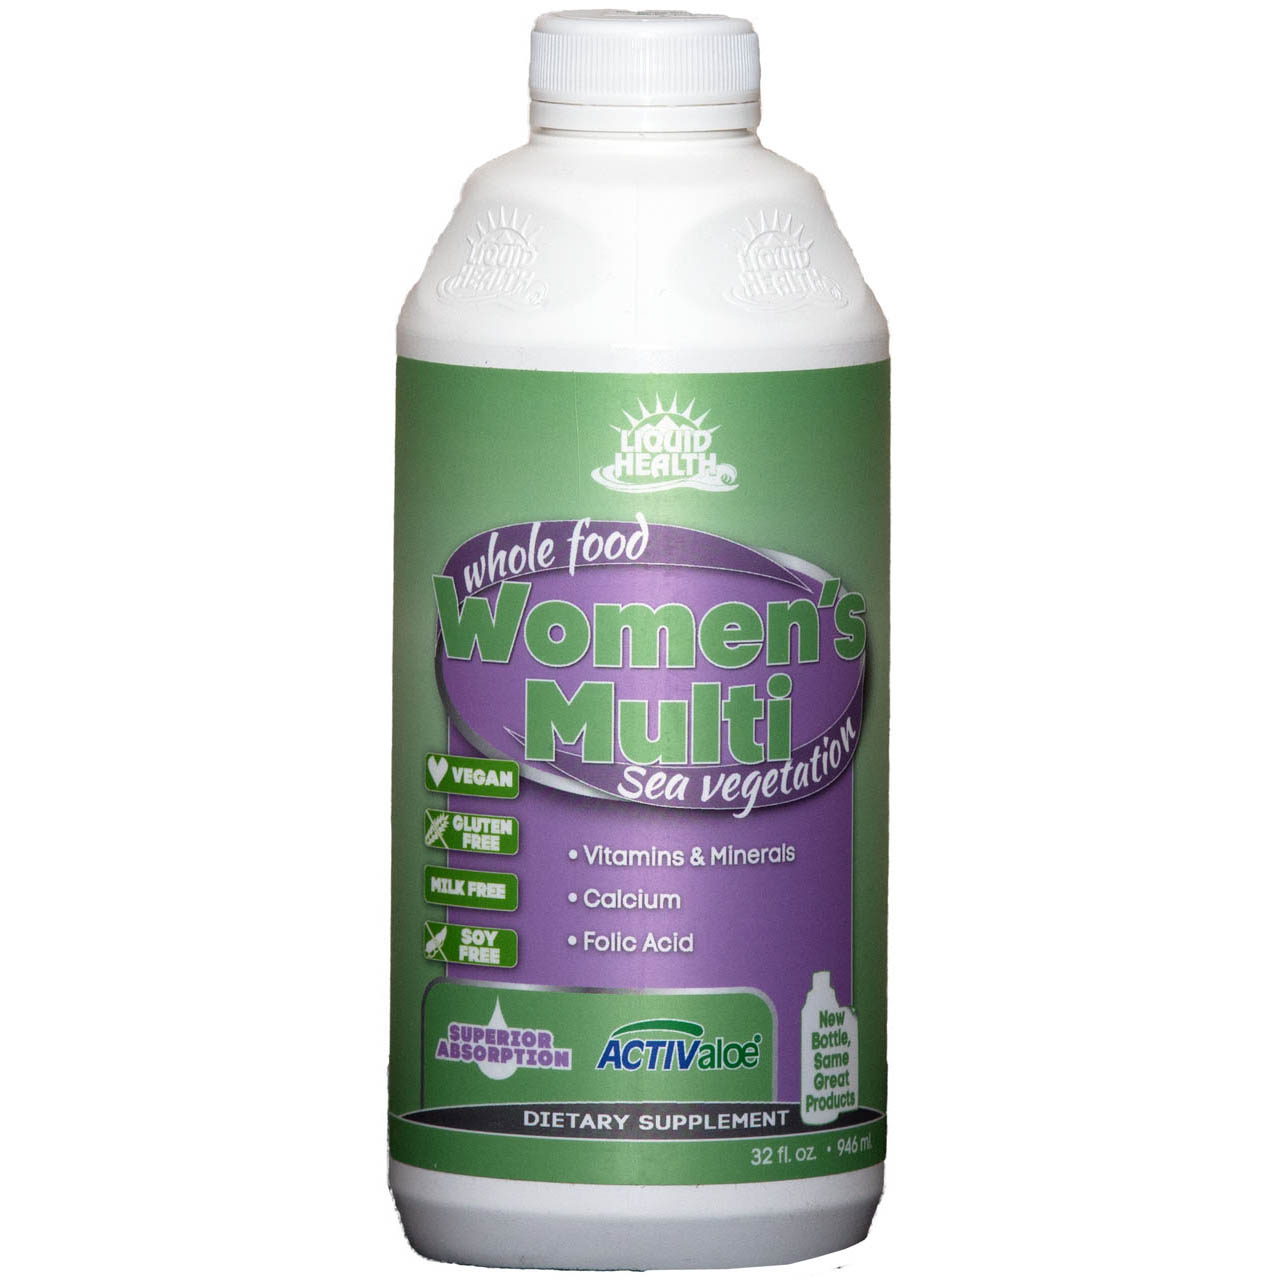 Liquid Health Women's Multi